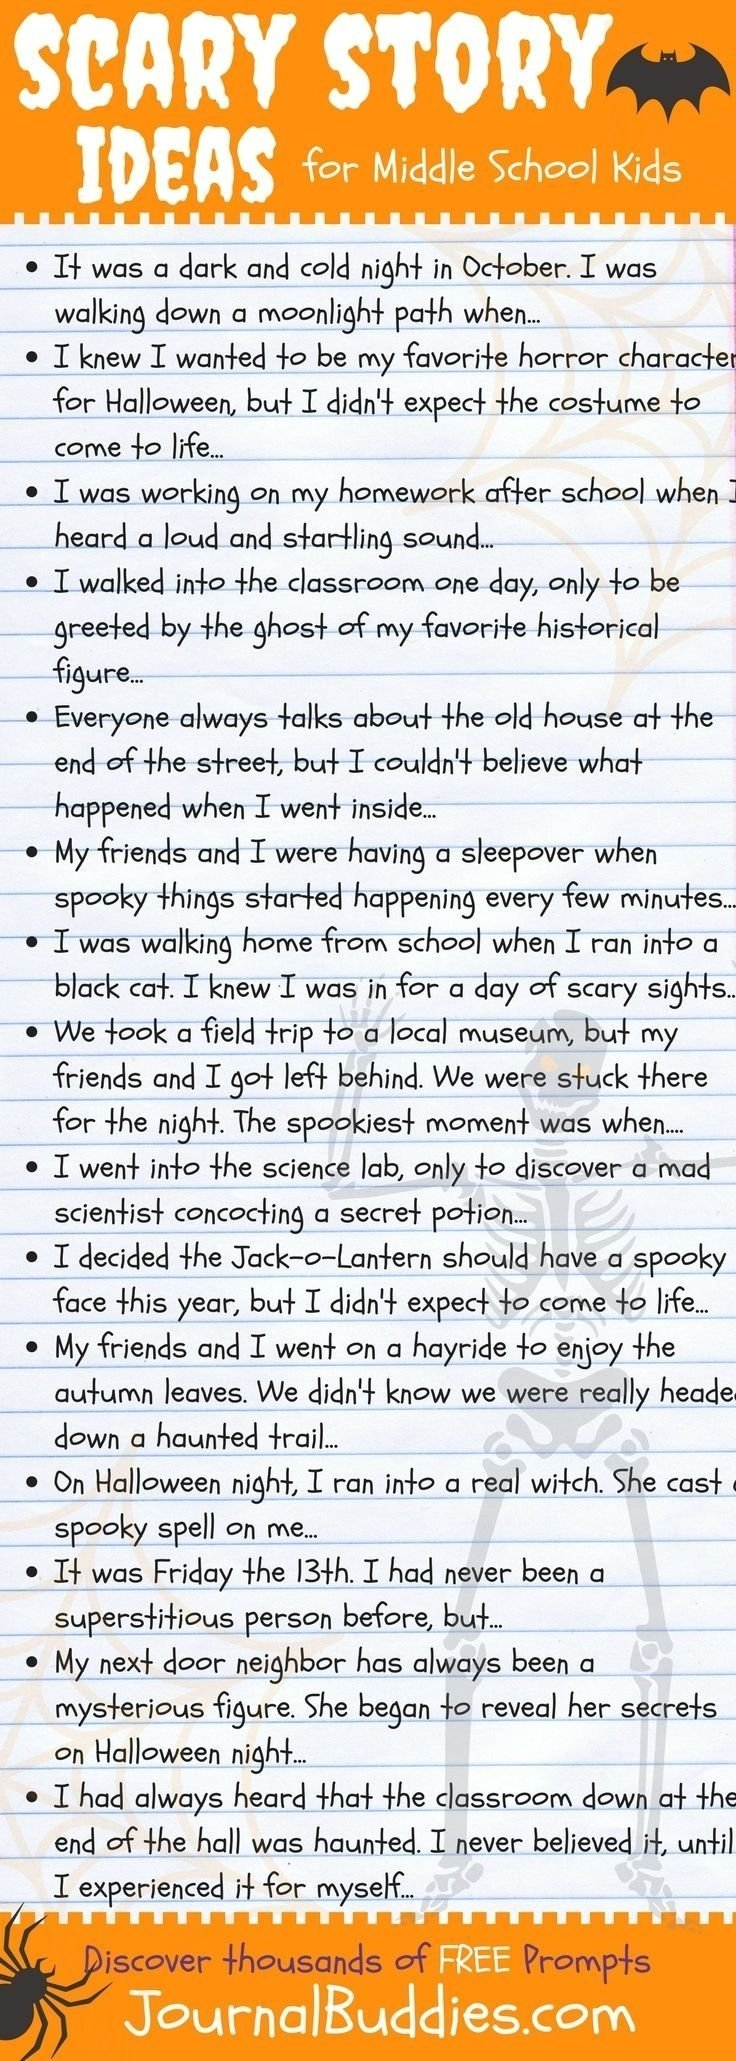 10 Beautiful Good Story Ideas For Kids scary story writing ideas for middle school kids writing skills 1 2021